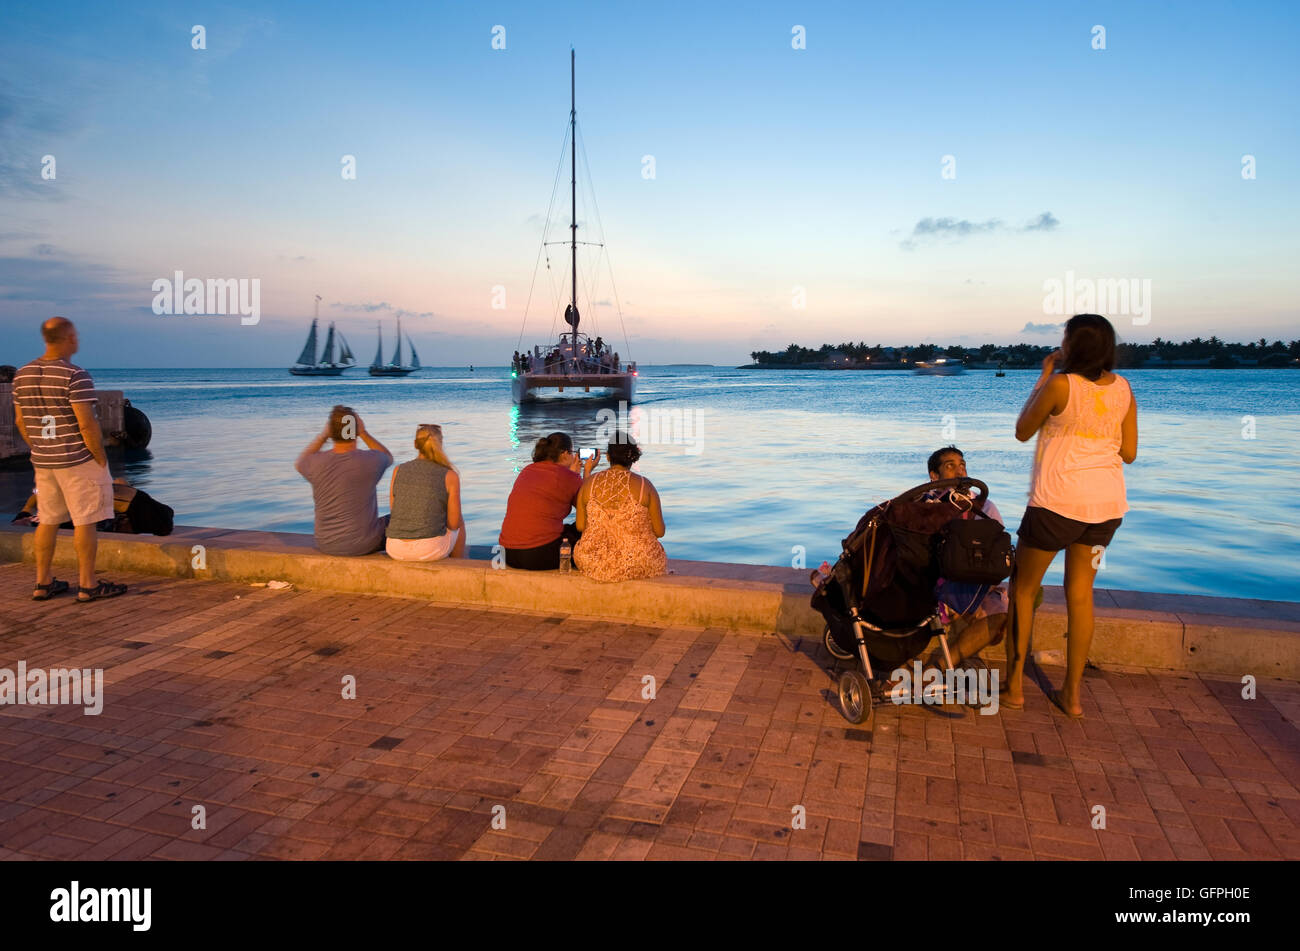 KEY WEST, FLORIDA, USA - MAY 03, 2016: Tourists are relaxing at the waterside in the twilight on Mallory Square - Stock Image